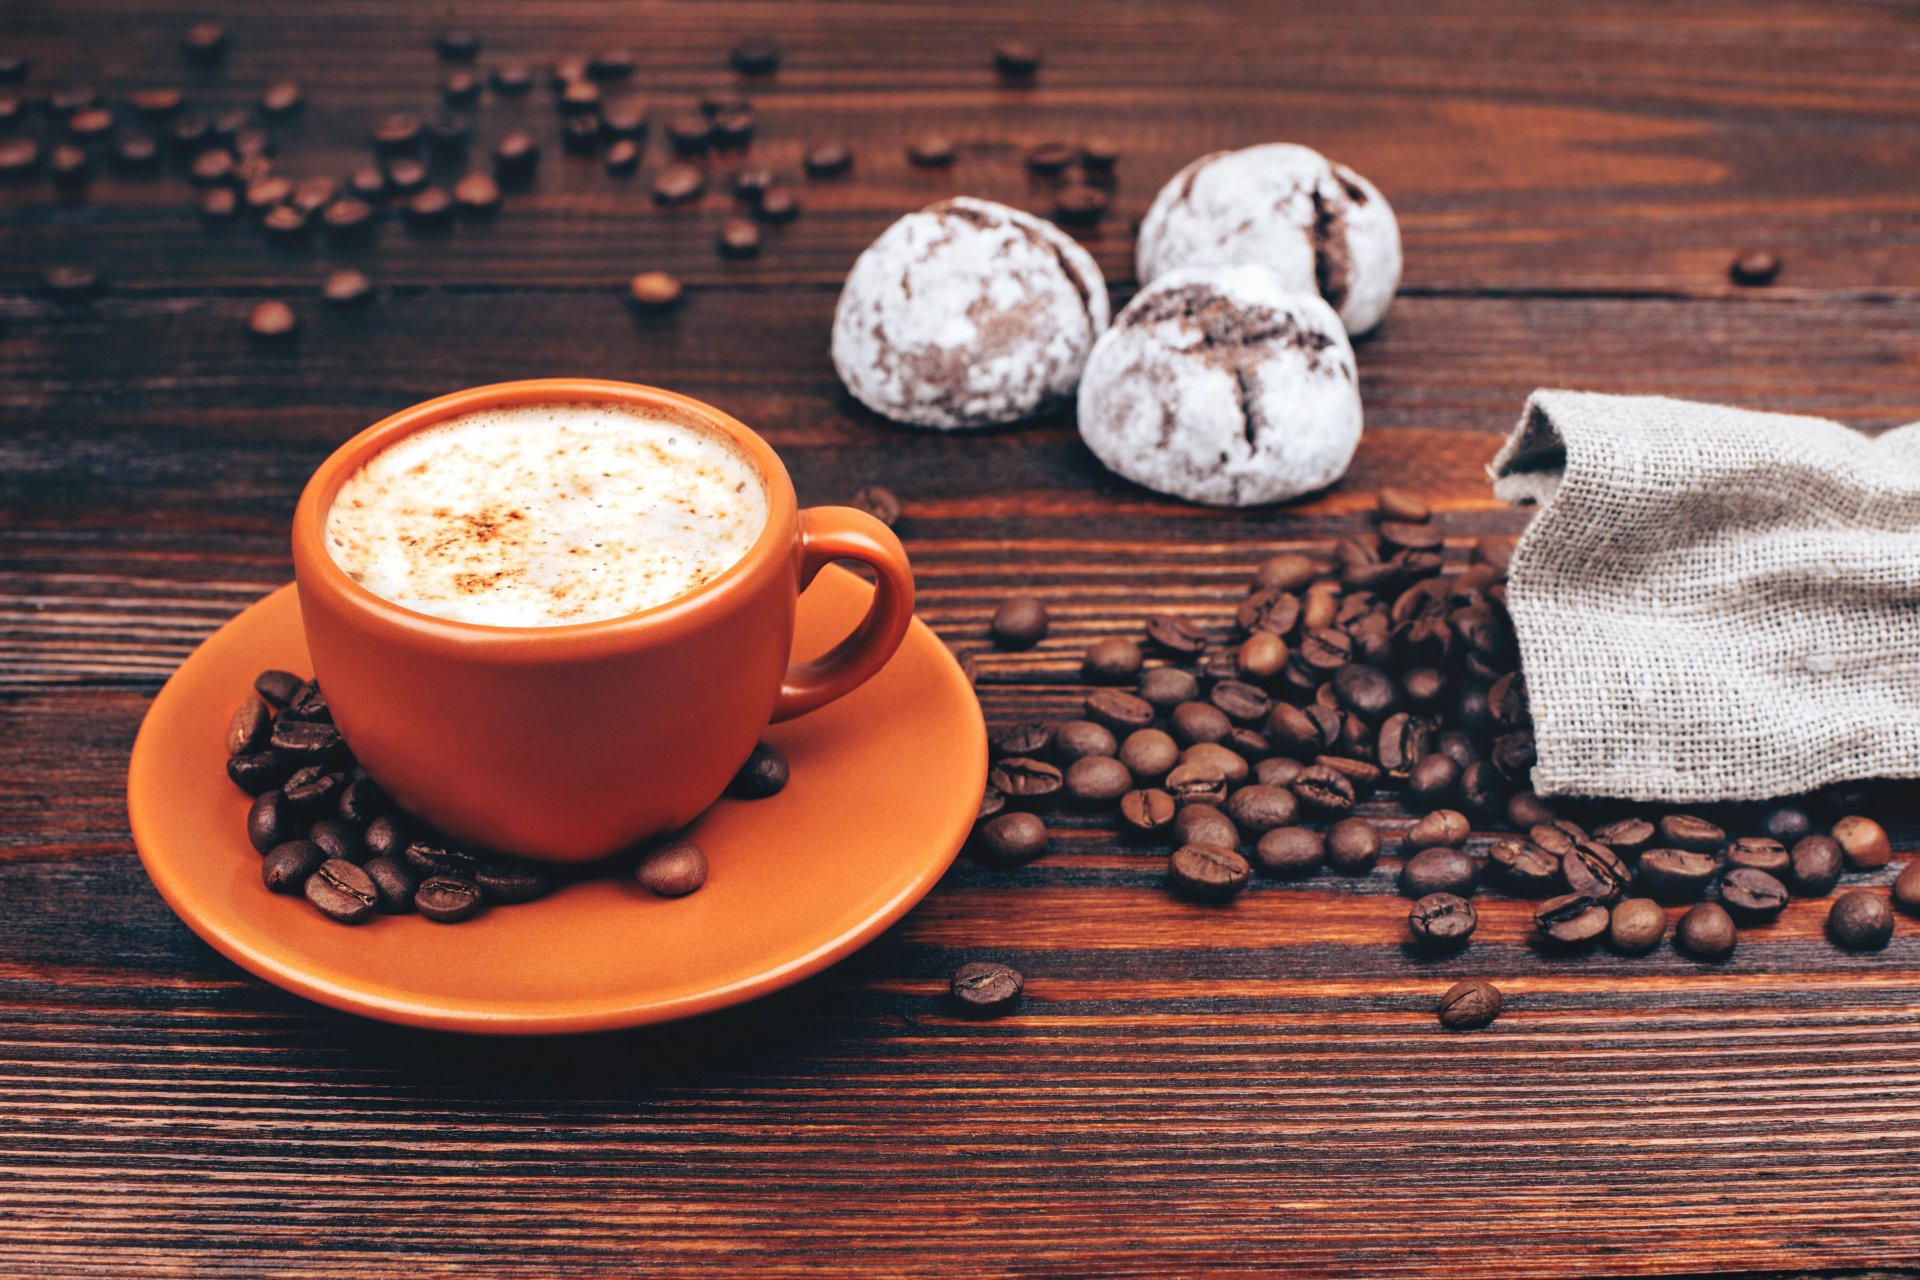 food coffee cappuccino morning table cup bag coffee shop grain candy yum-yum background blur bokeh wallpaper.